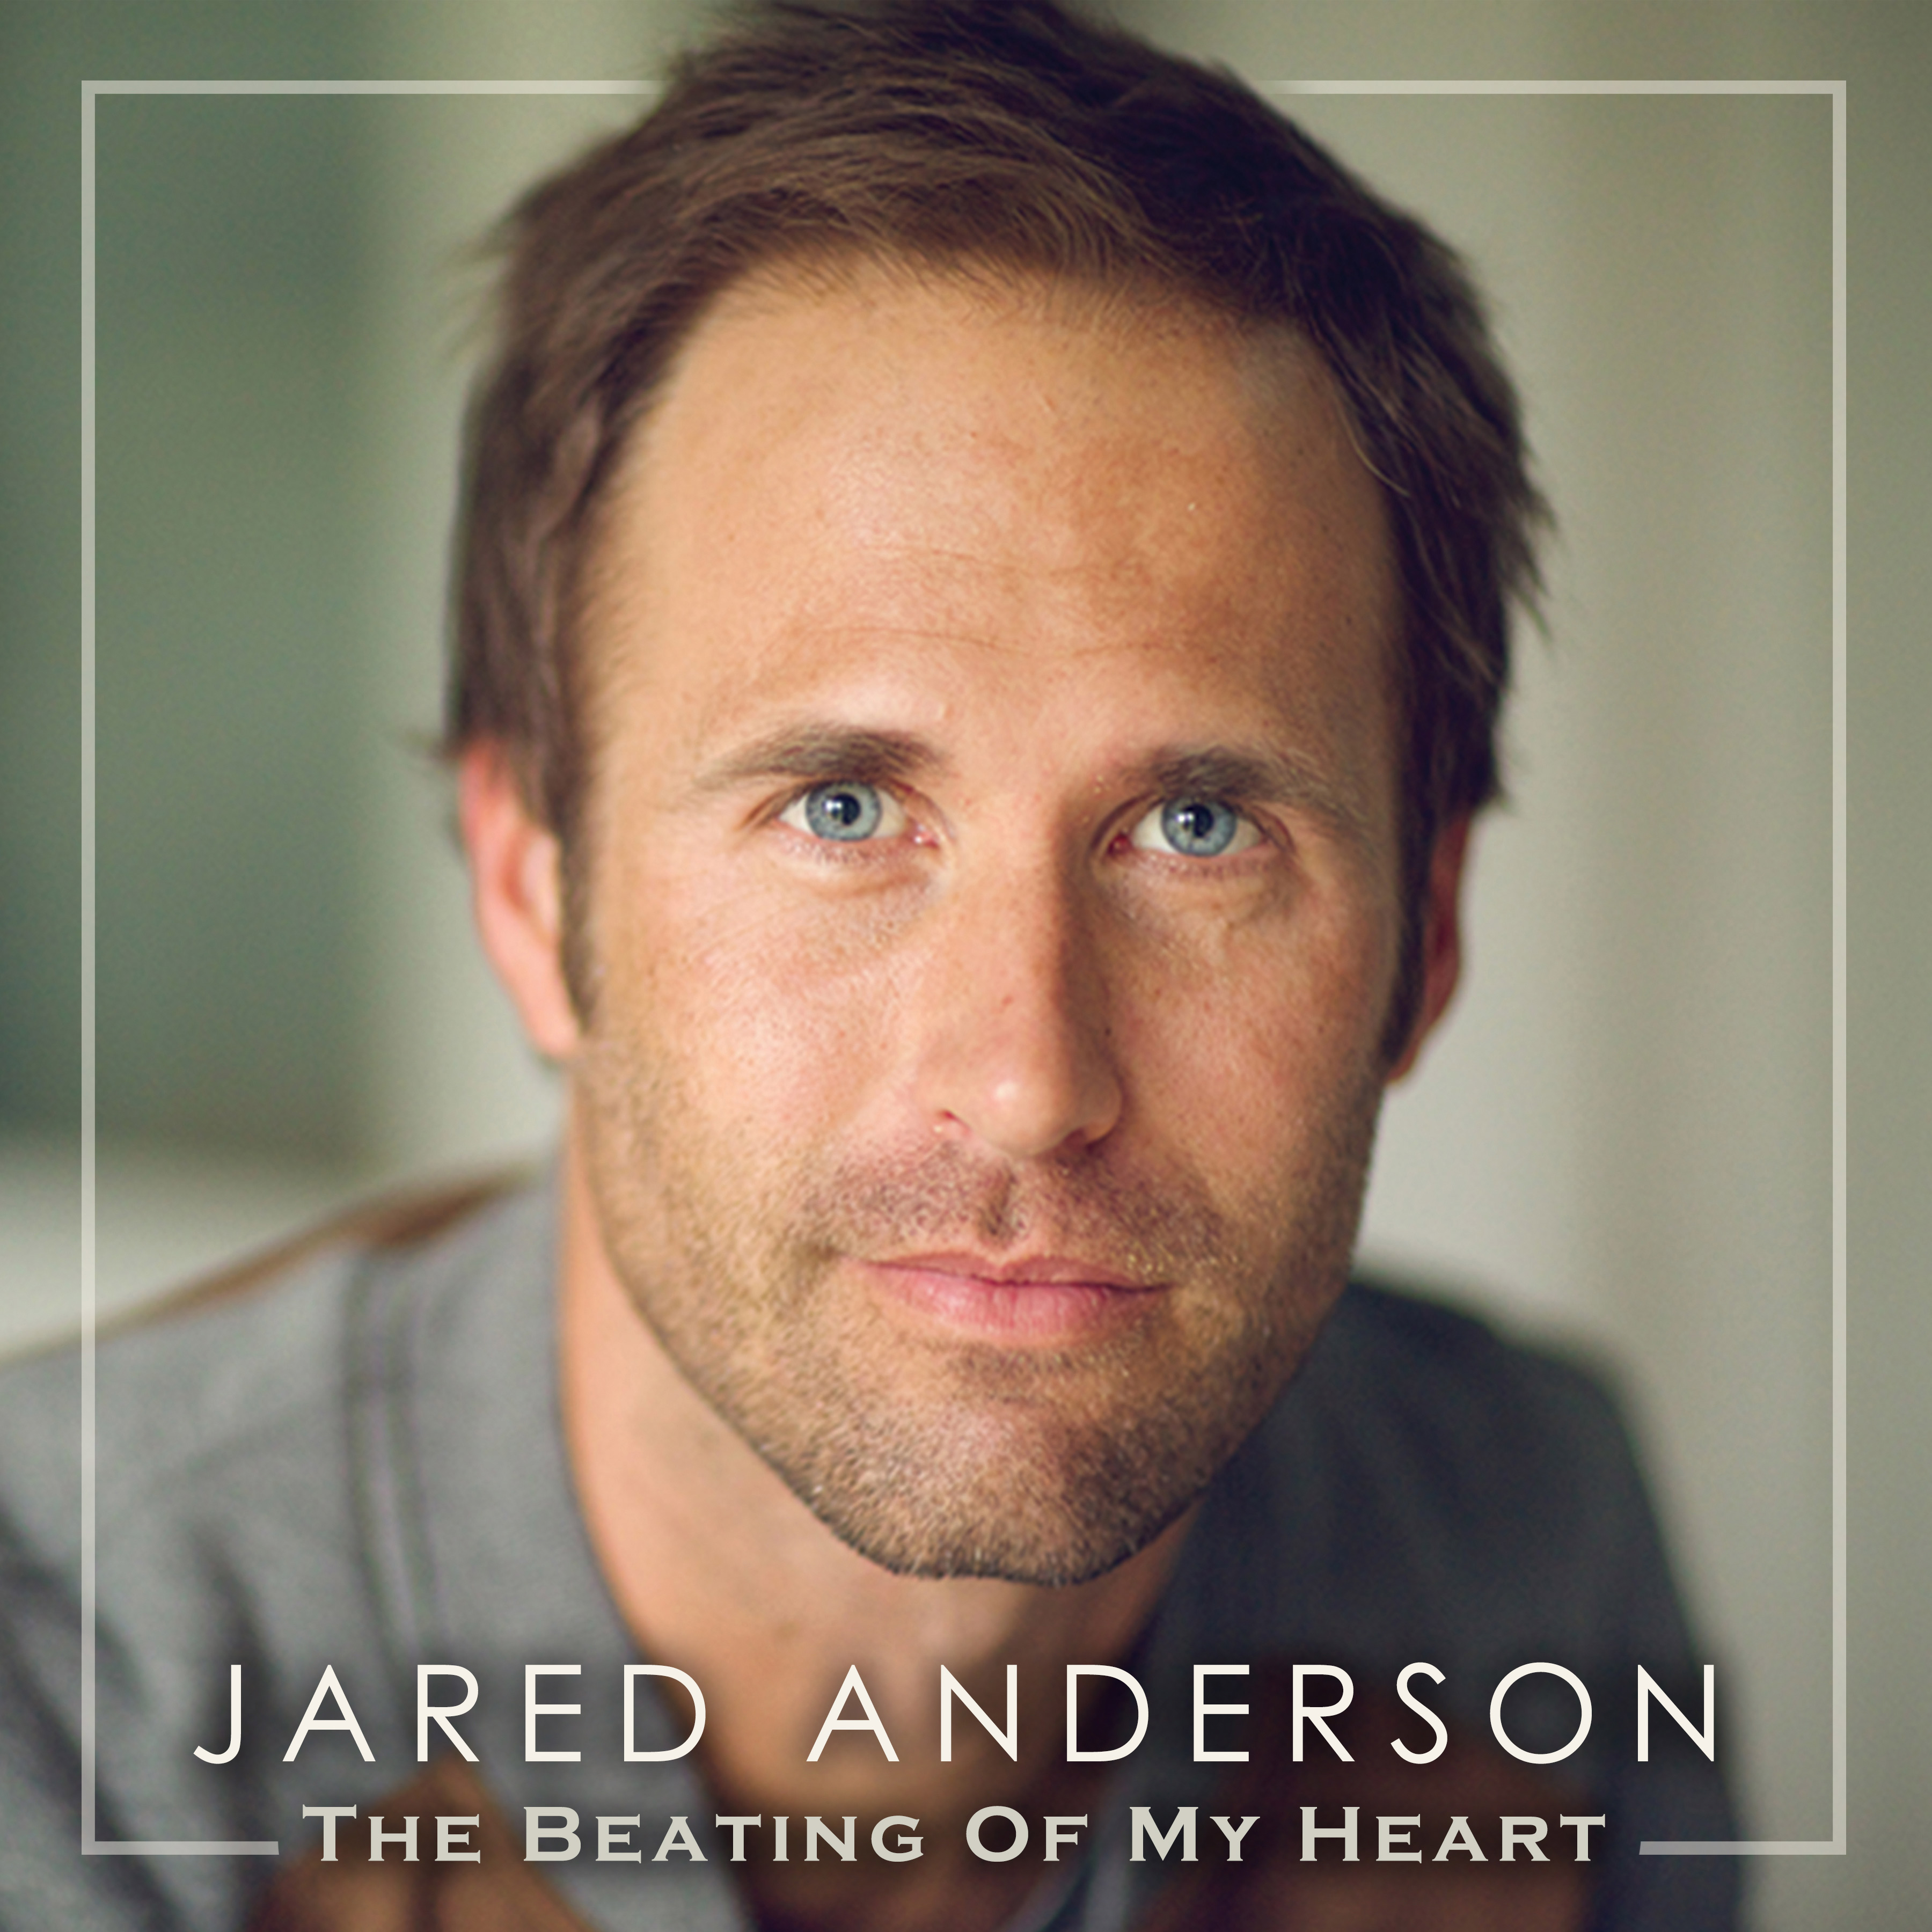 Jared Anderson - The Beating of My Heart